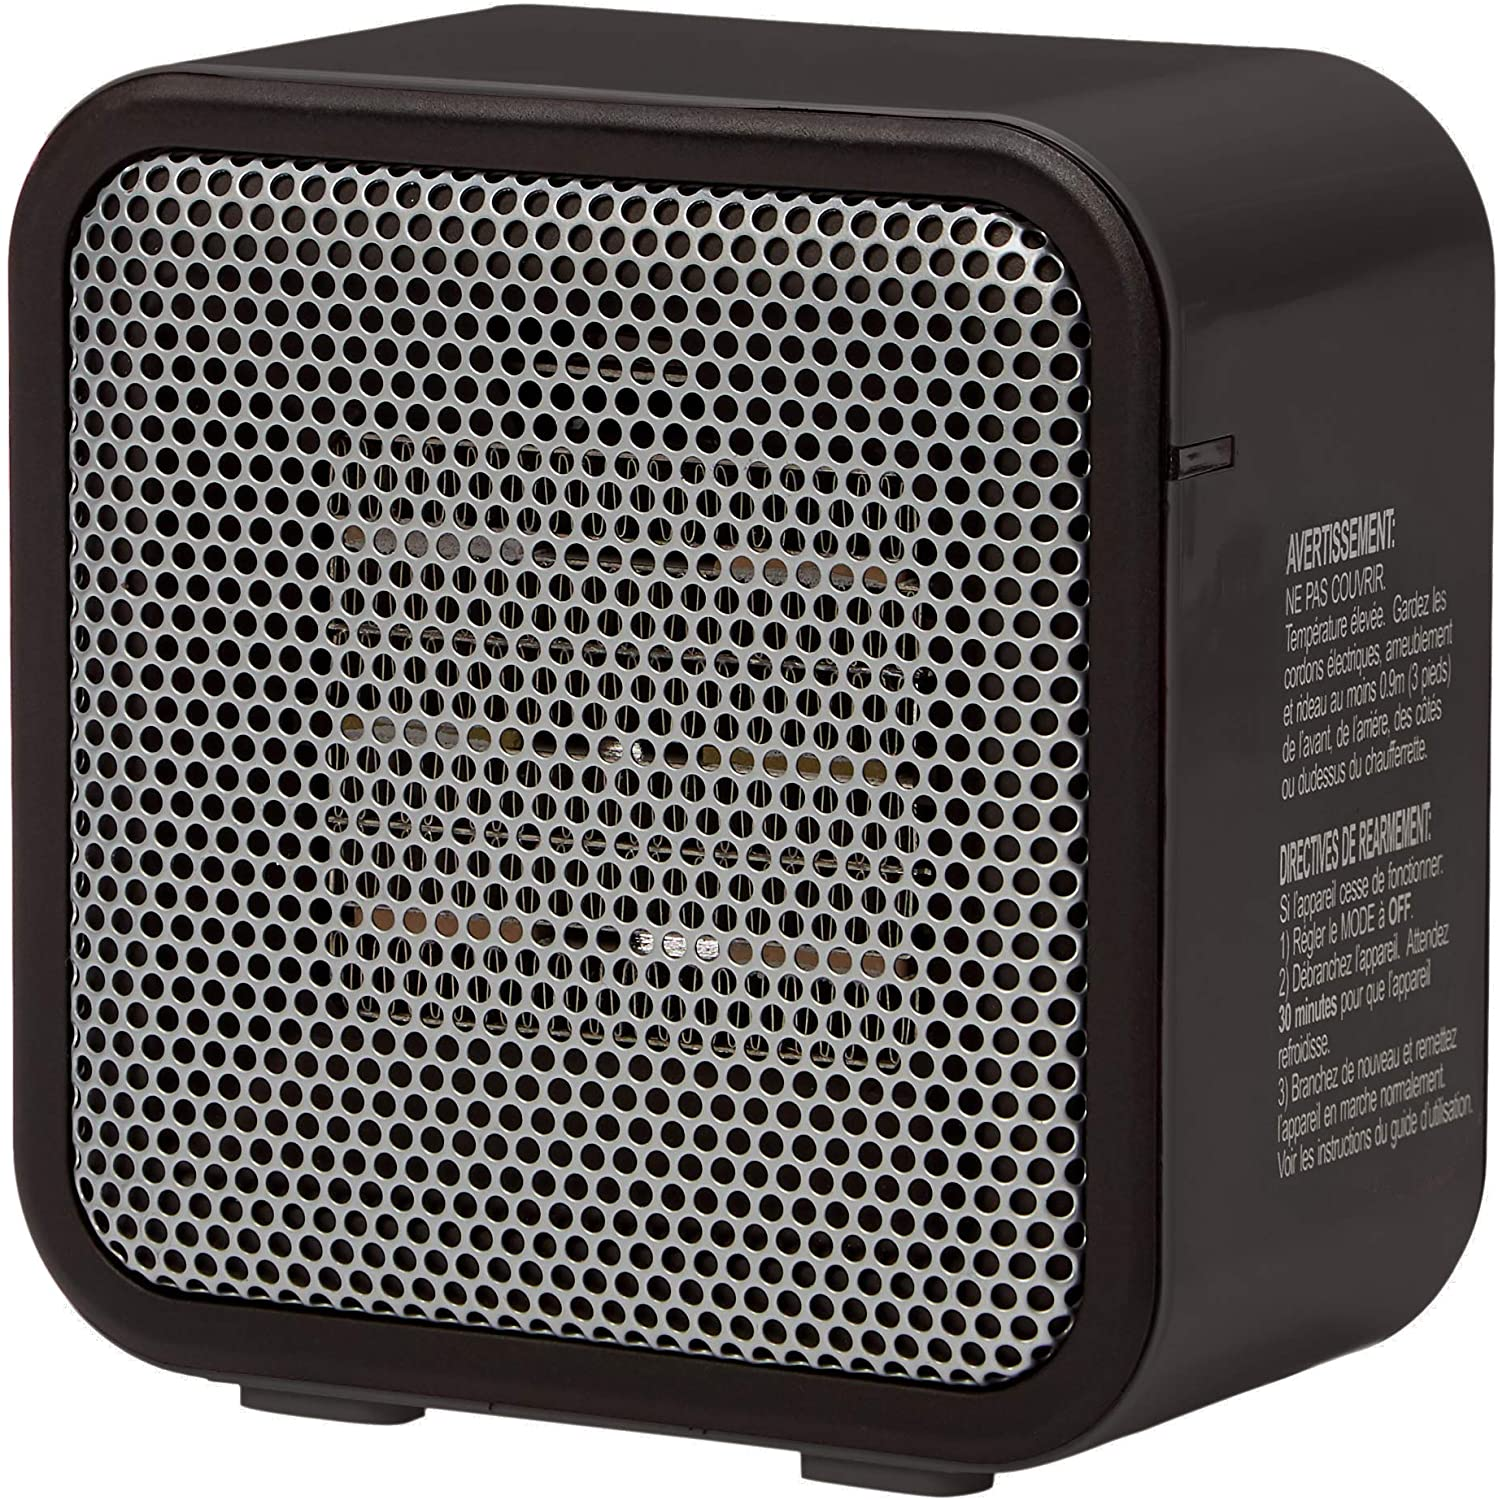 DHgateBasics 500-Watt Ceramic Small Space Personal Mini Heater - Black